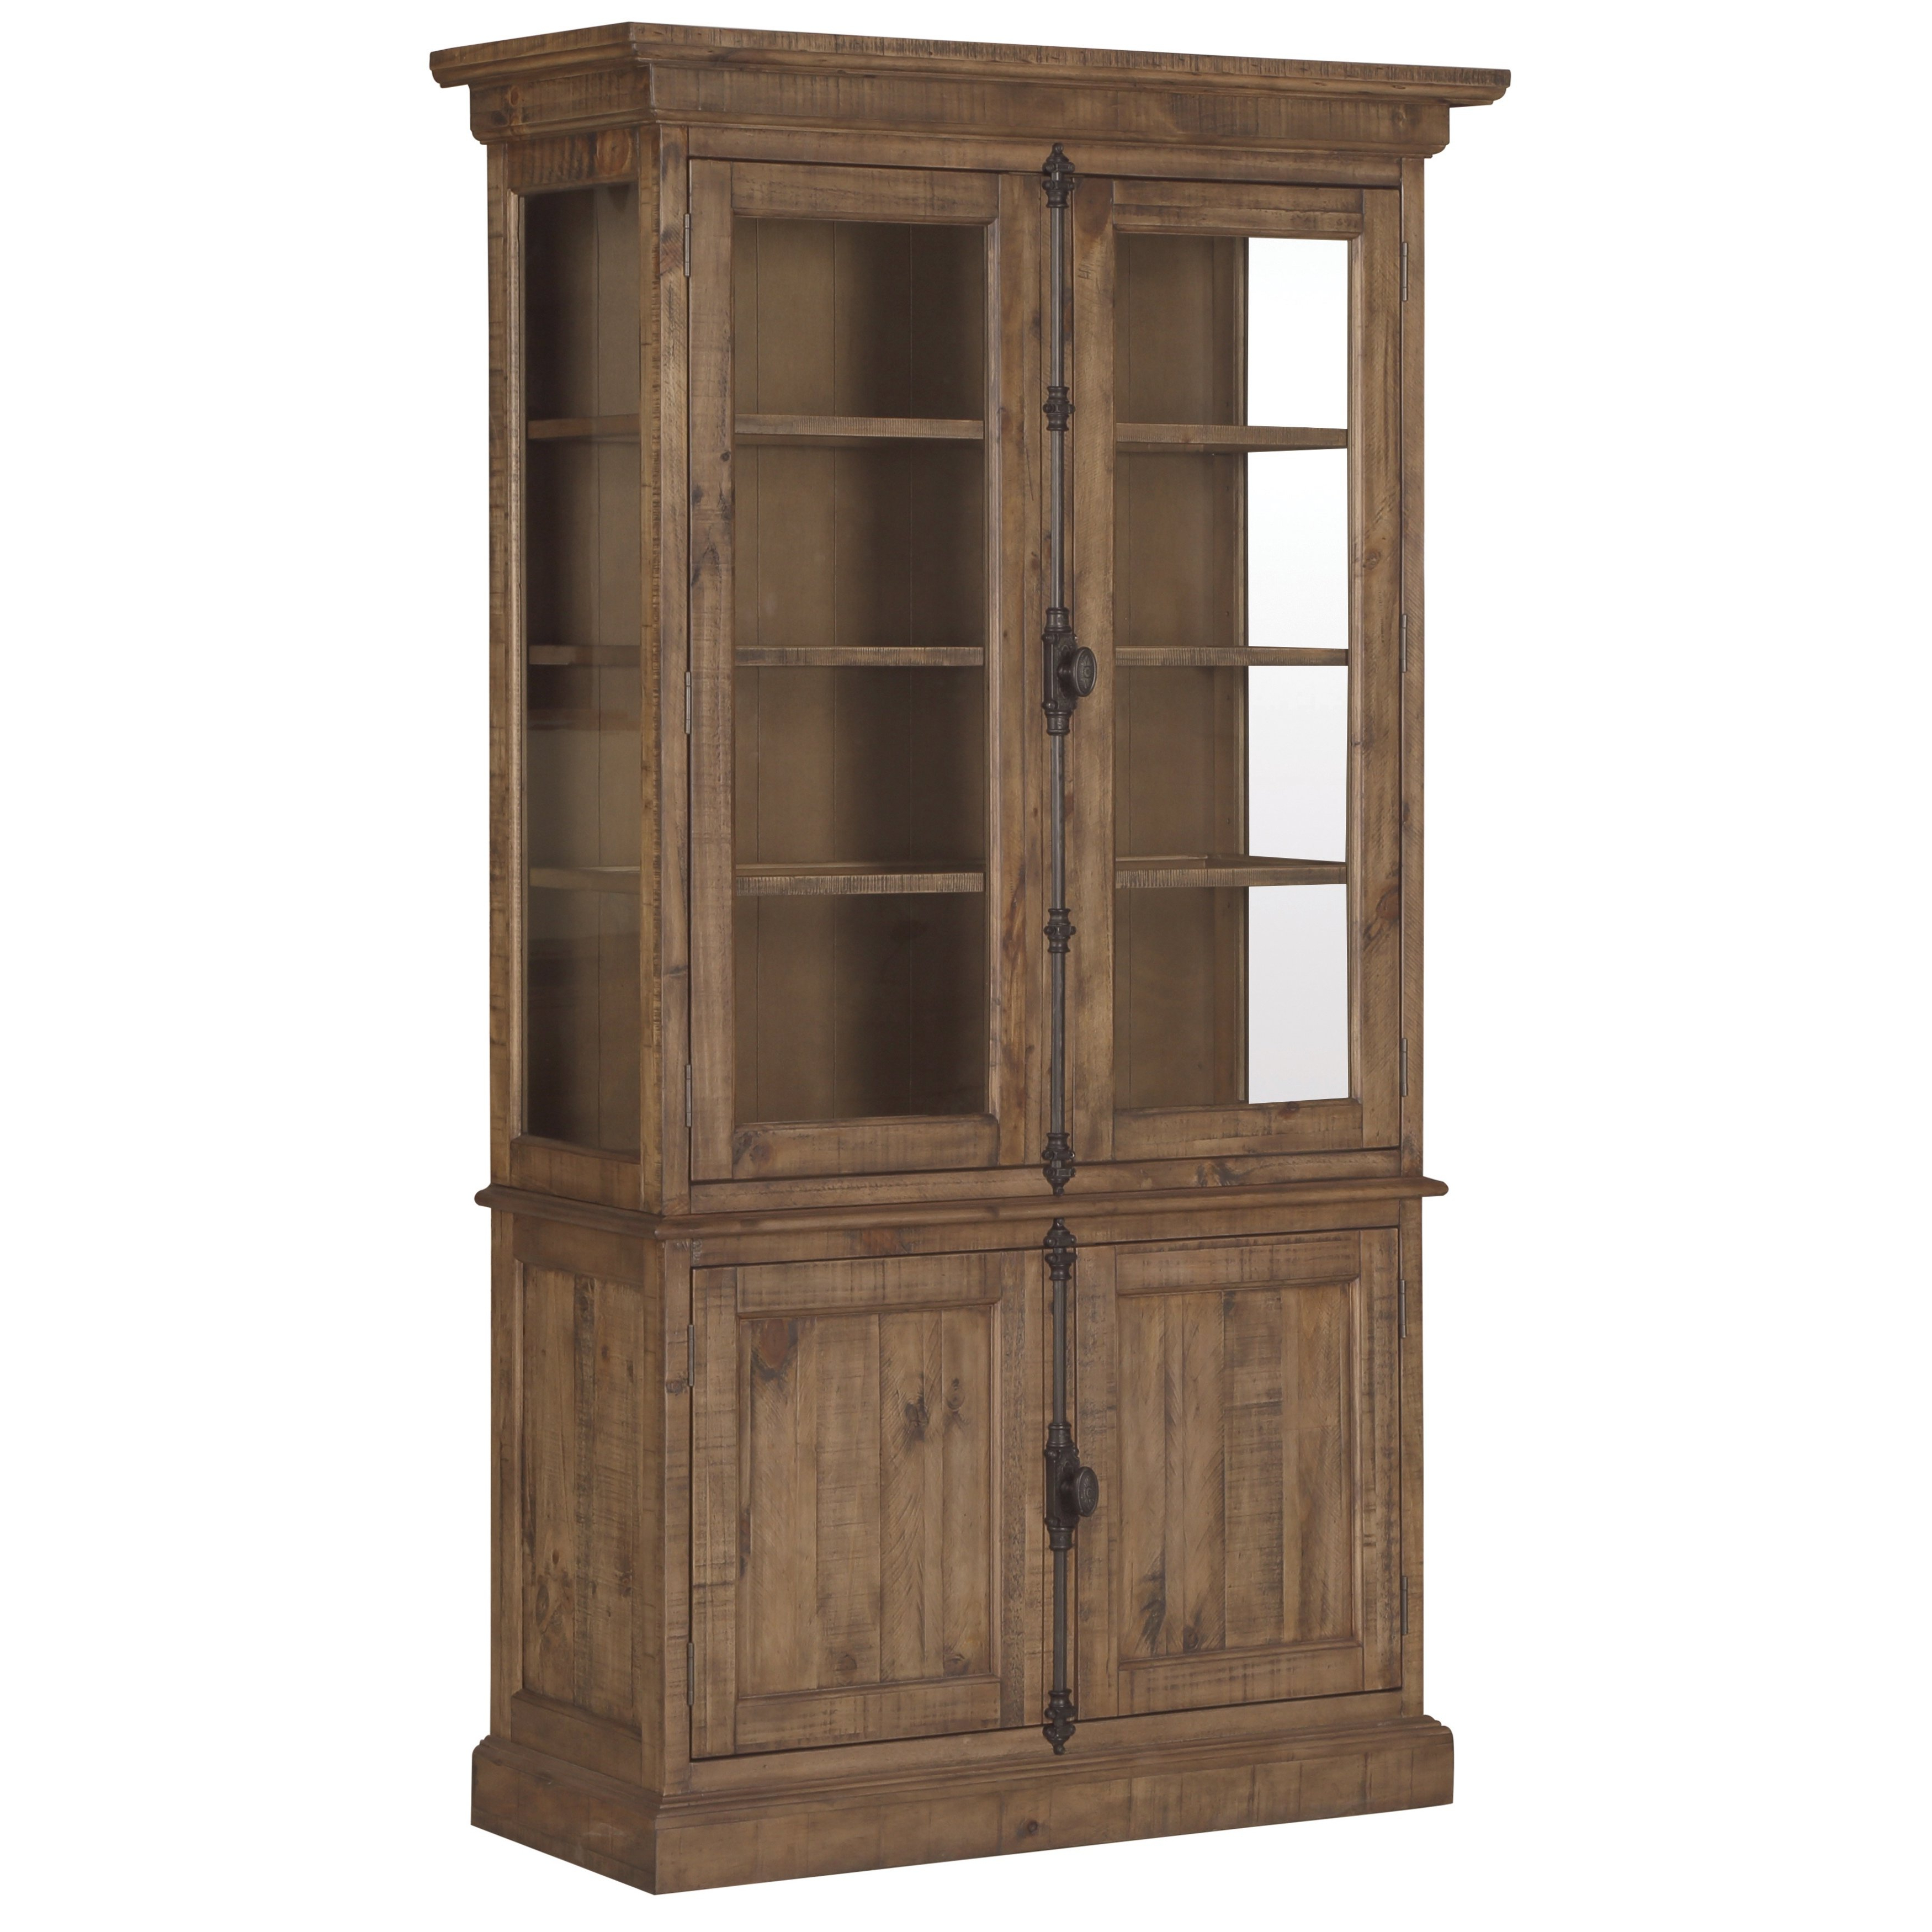 Filkins Lighted China Cabinet Intended For 2020 Filkins Sideboards (Gallery 10 of 20)